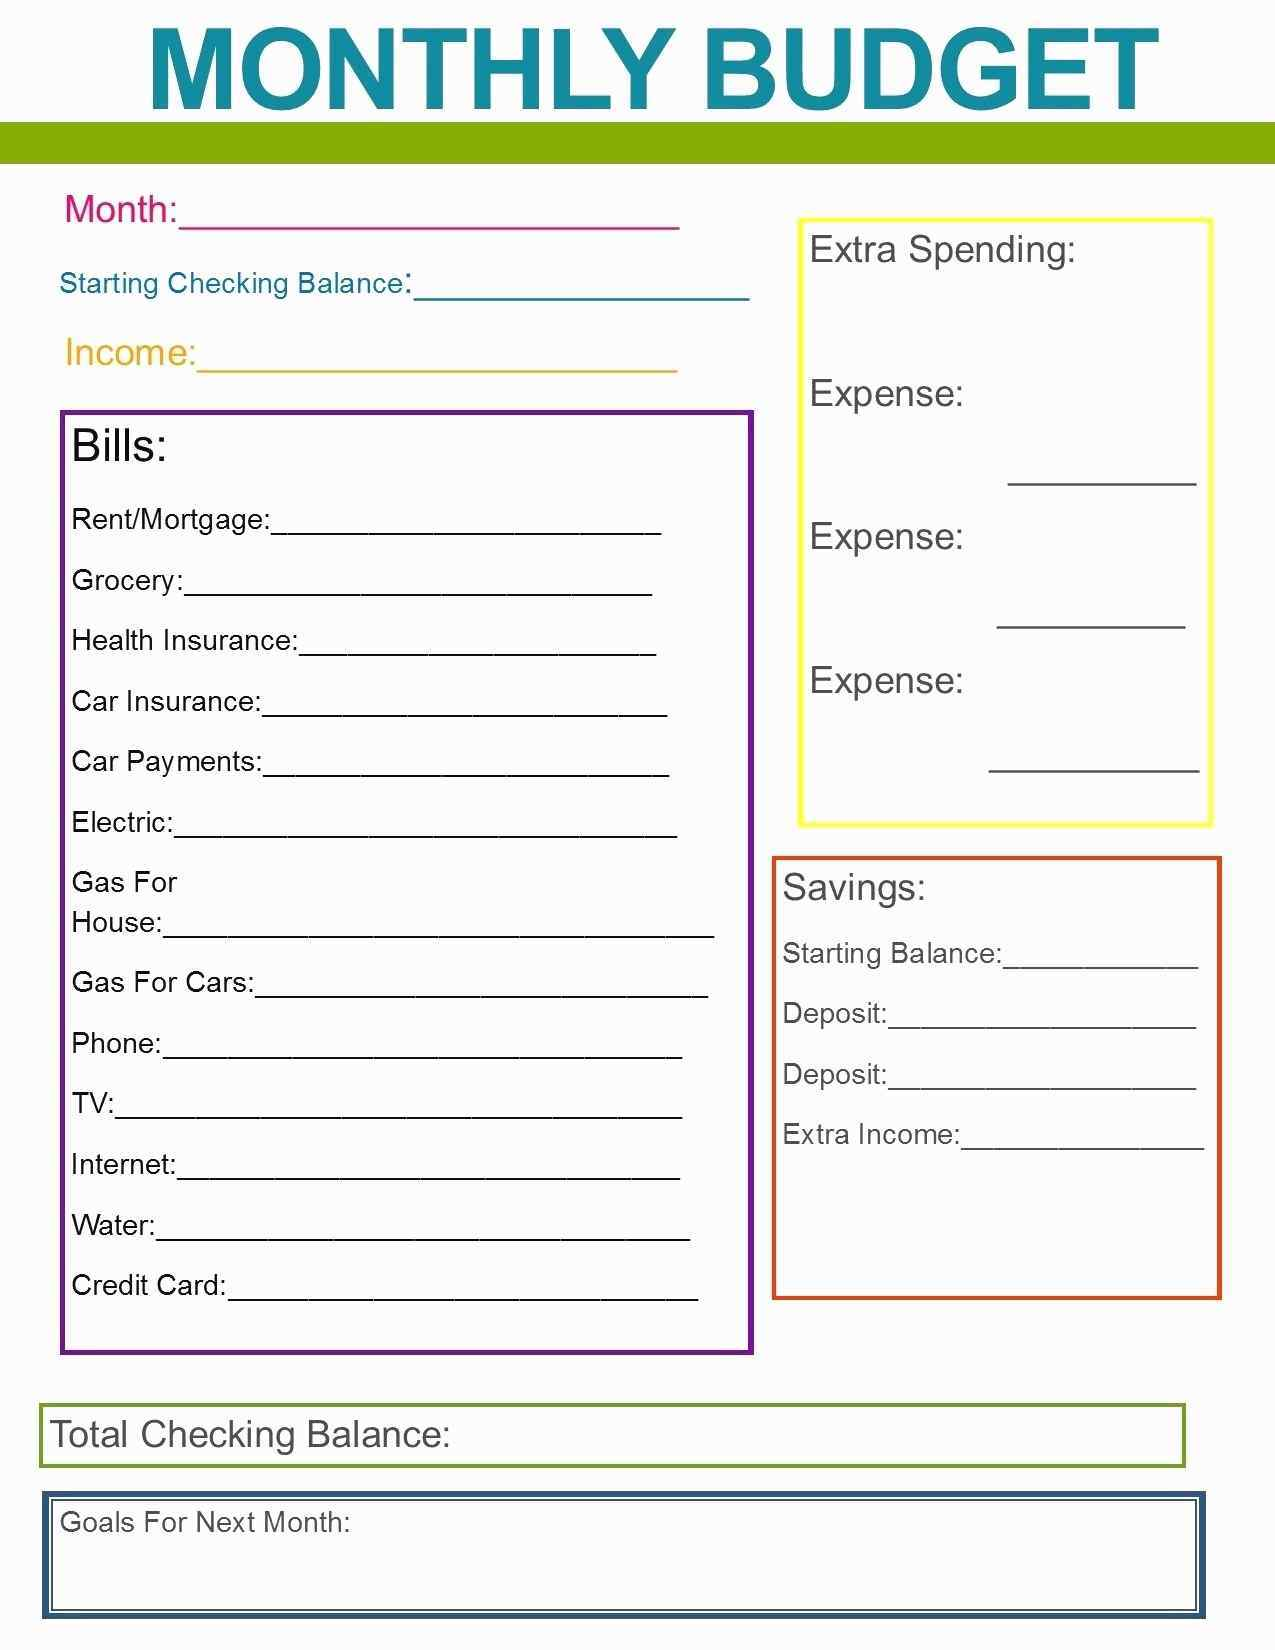 Annual Household Budget Template Unique Simple Home Bud Worksheet Fresh Simple Home Bud Worksheet New